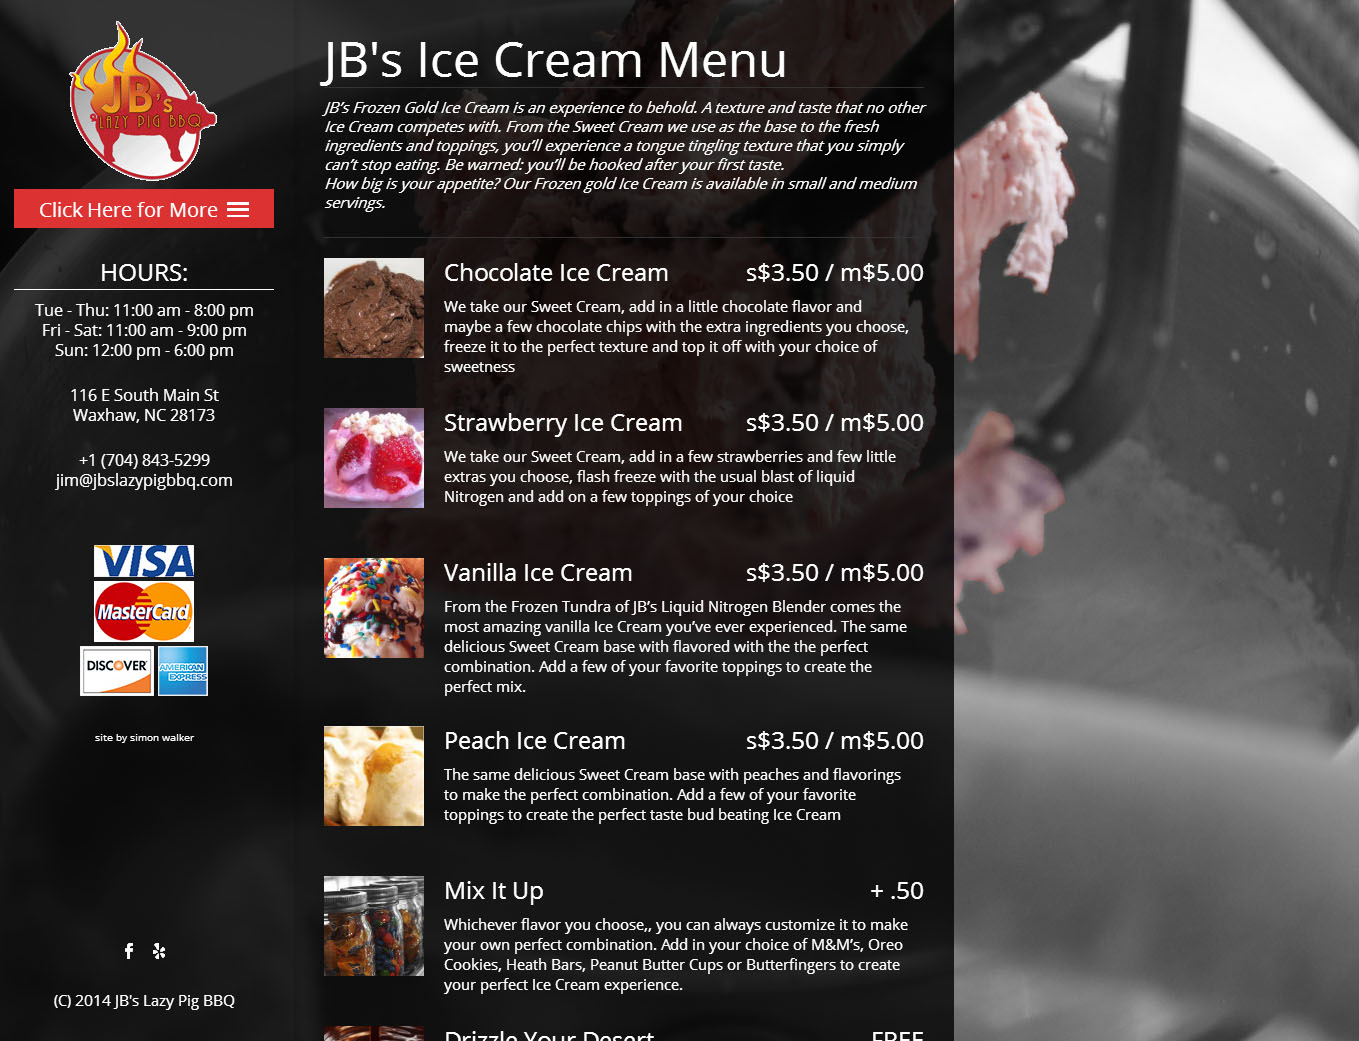 JB's Lazy Pig and Frozen Gold Ice Cream Menu Page